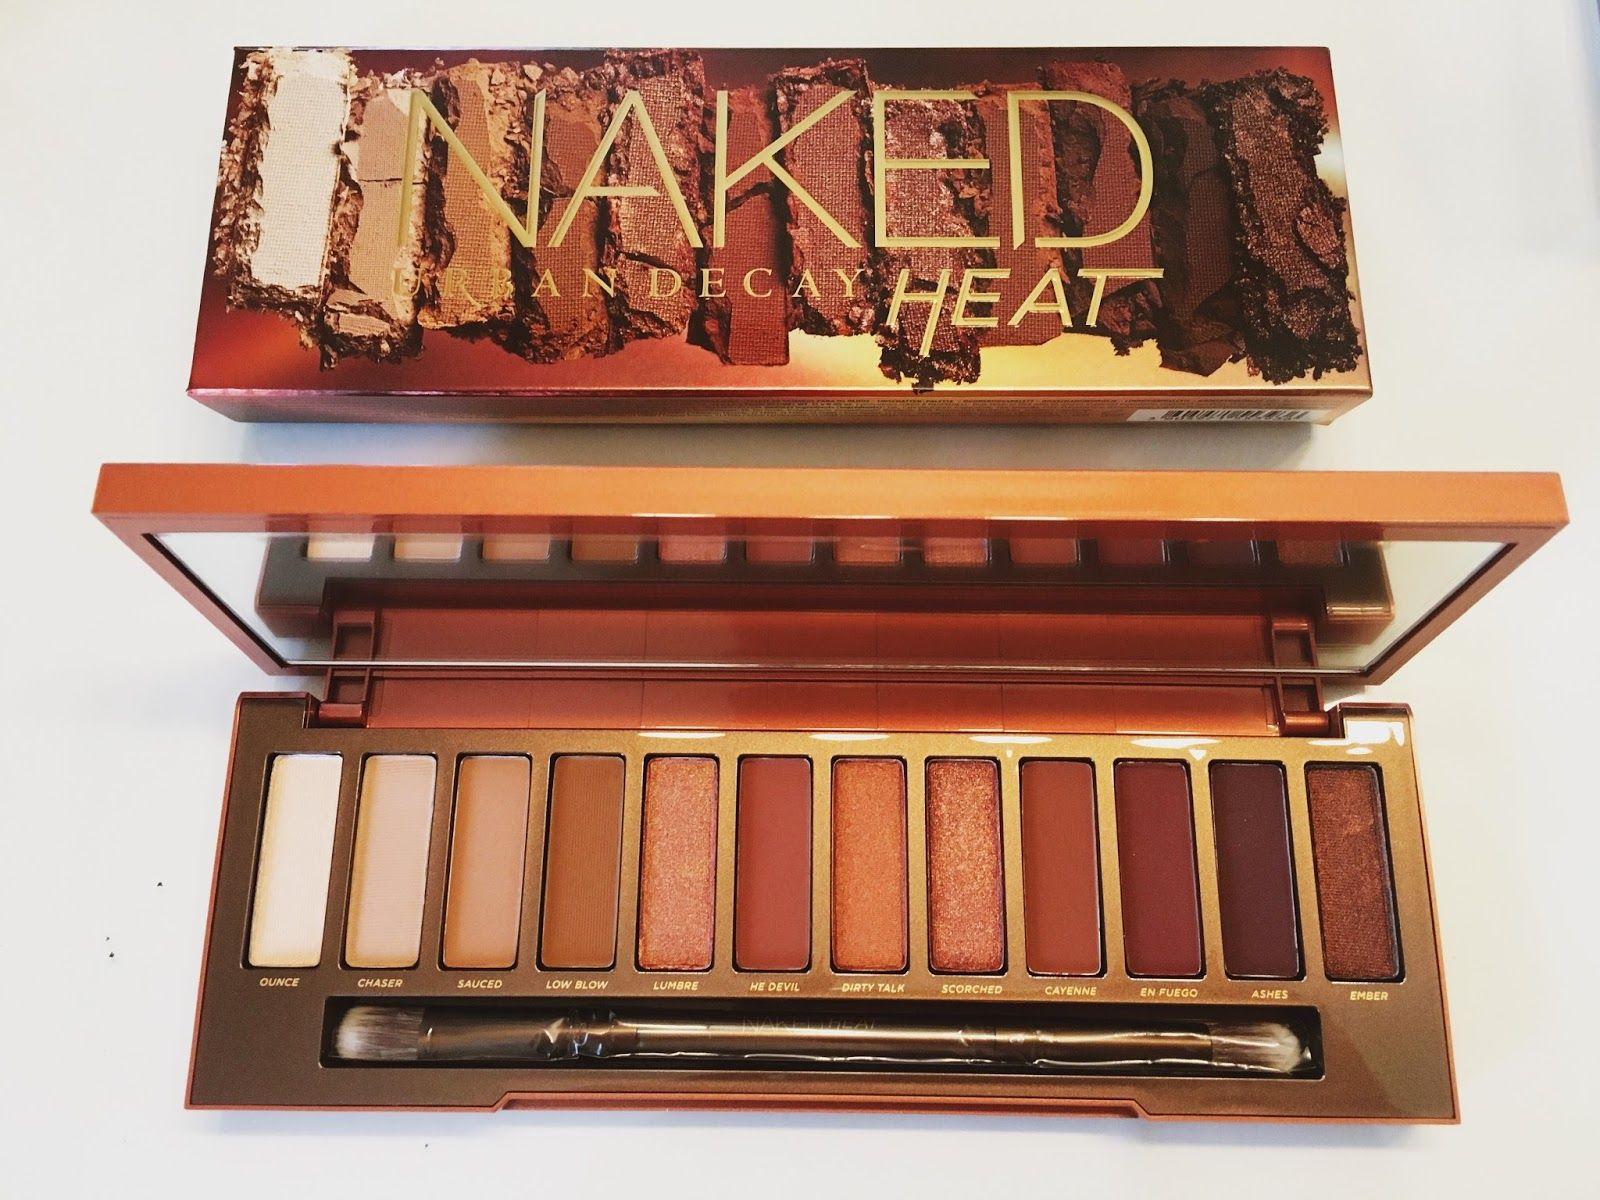 #MCFridayTreat: Weve got 10 Urban Decay Naked HEAT Palettes to giveaway | Marie Claire